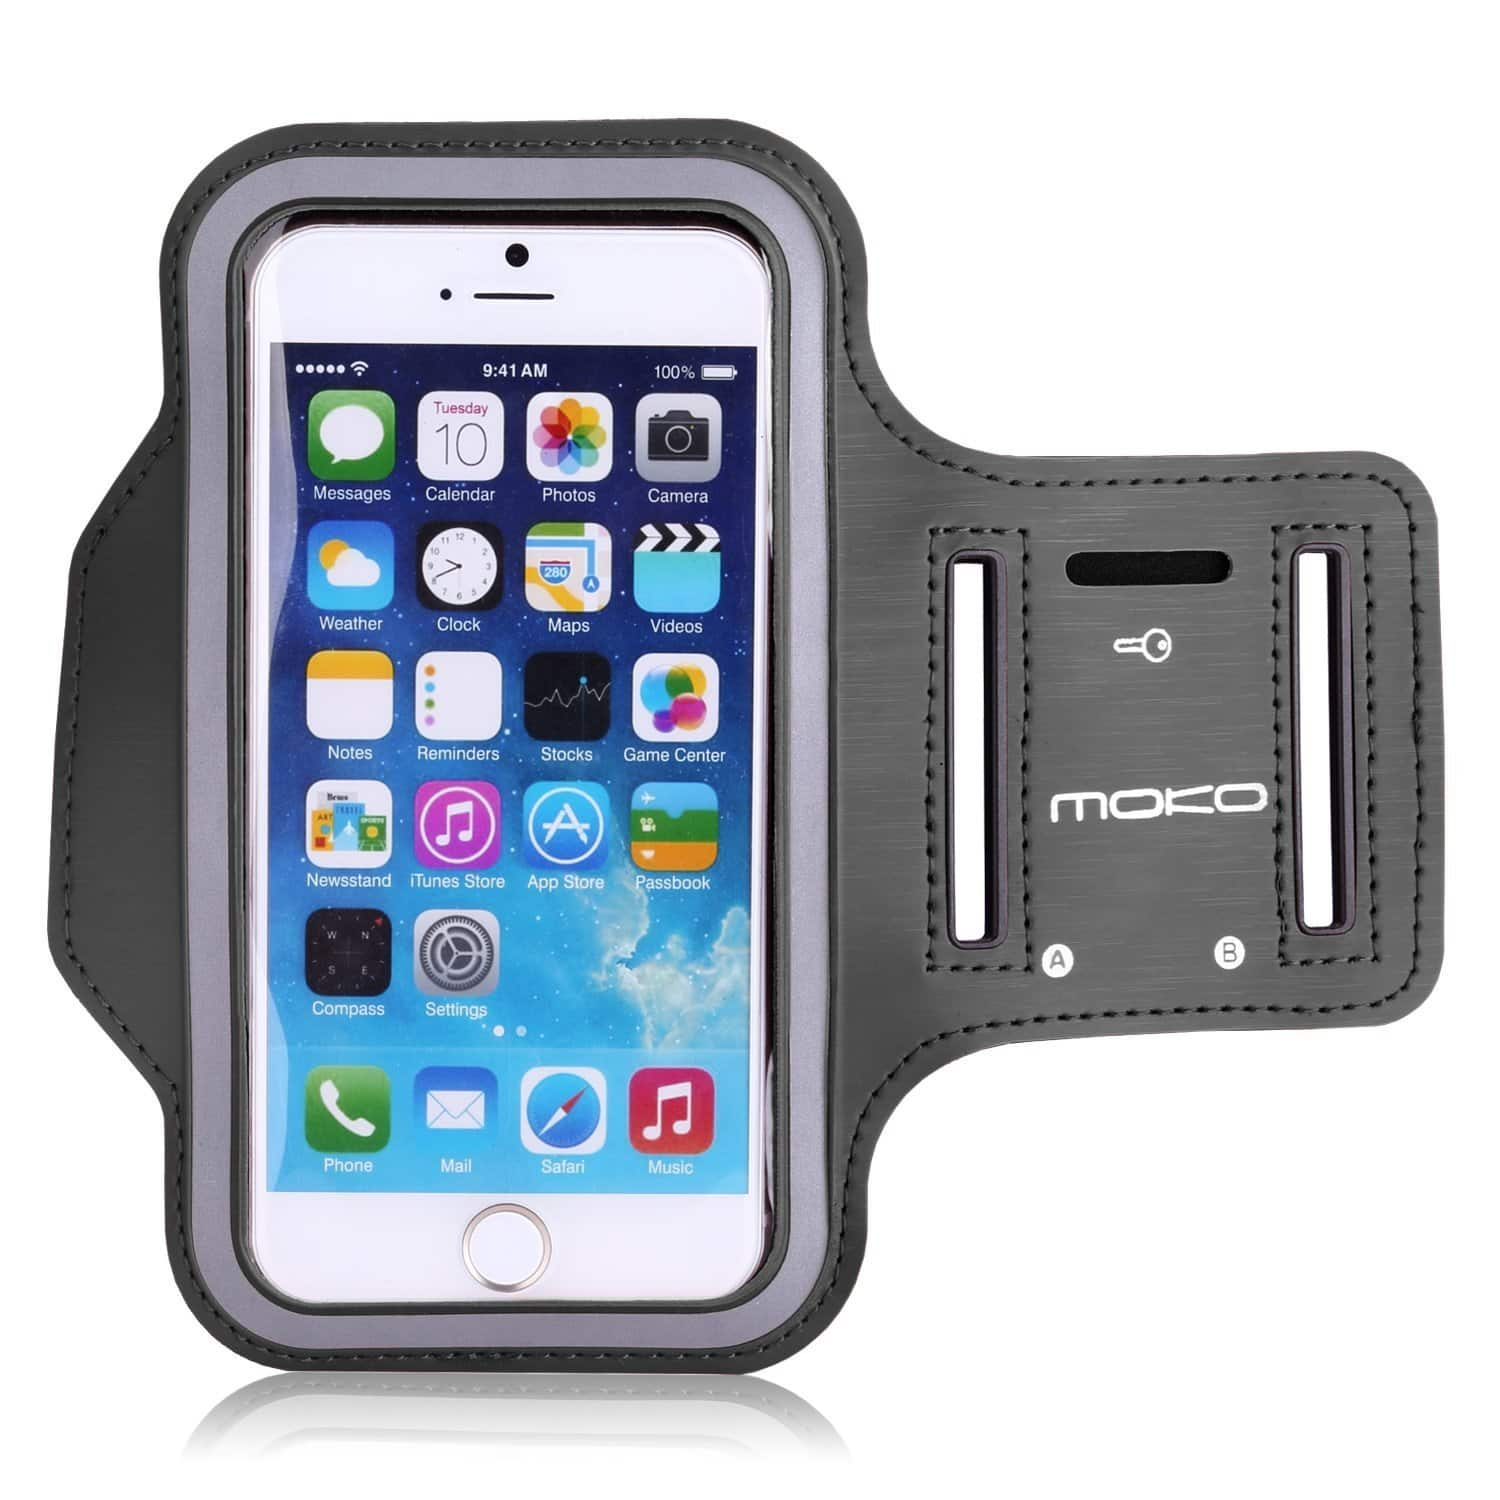 Moko iPhone 6 6s Sports Armband $0.99 + Free Shipping